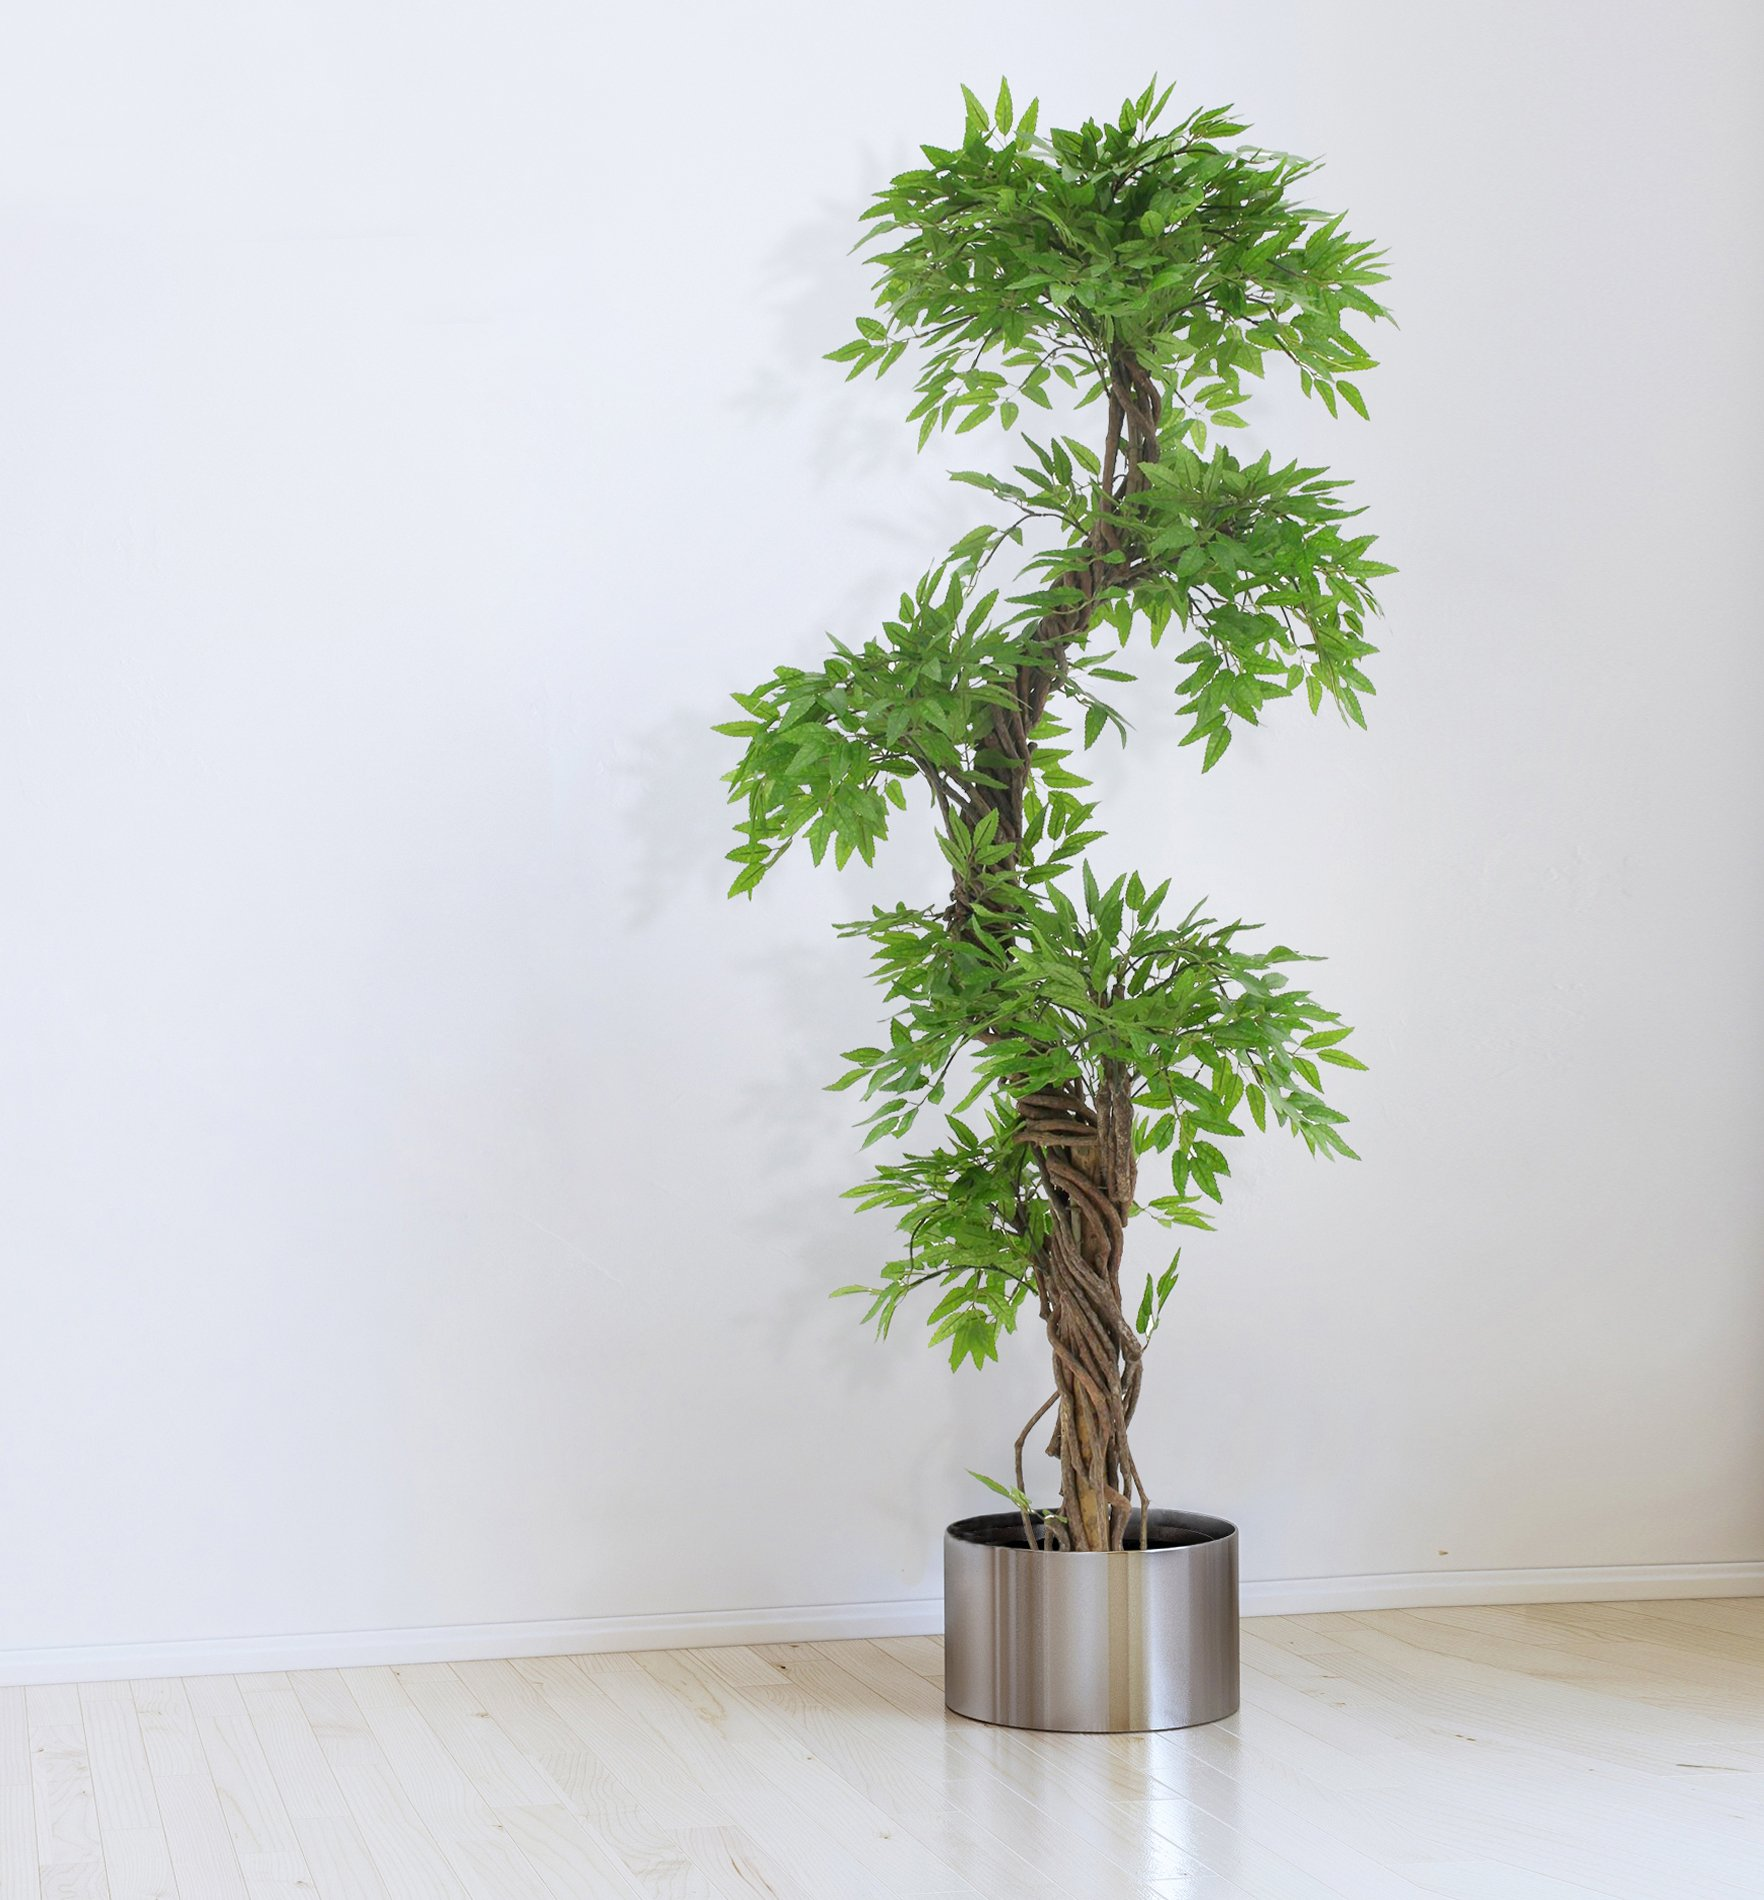 Large Contemporary Artificial Plants and Trees, Luxury Japanese Fruticosa Tree, Handmade Using Real Bark & Synthetic Leaves, Indoor Plant - 165cm Tall by Vert Lifestyle